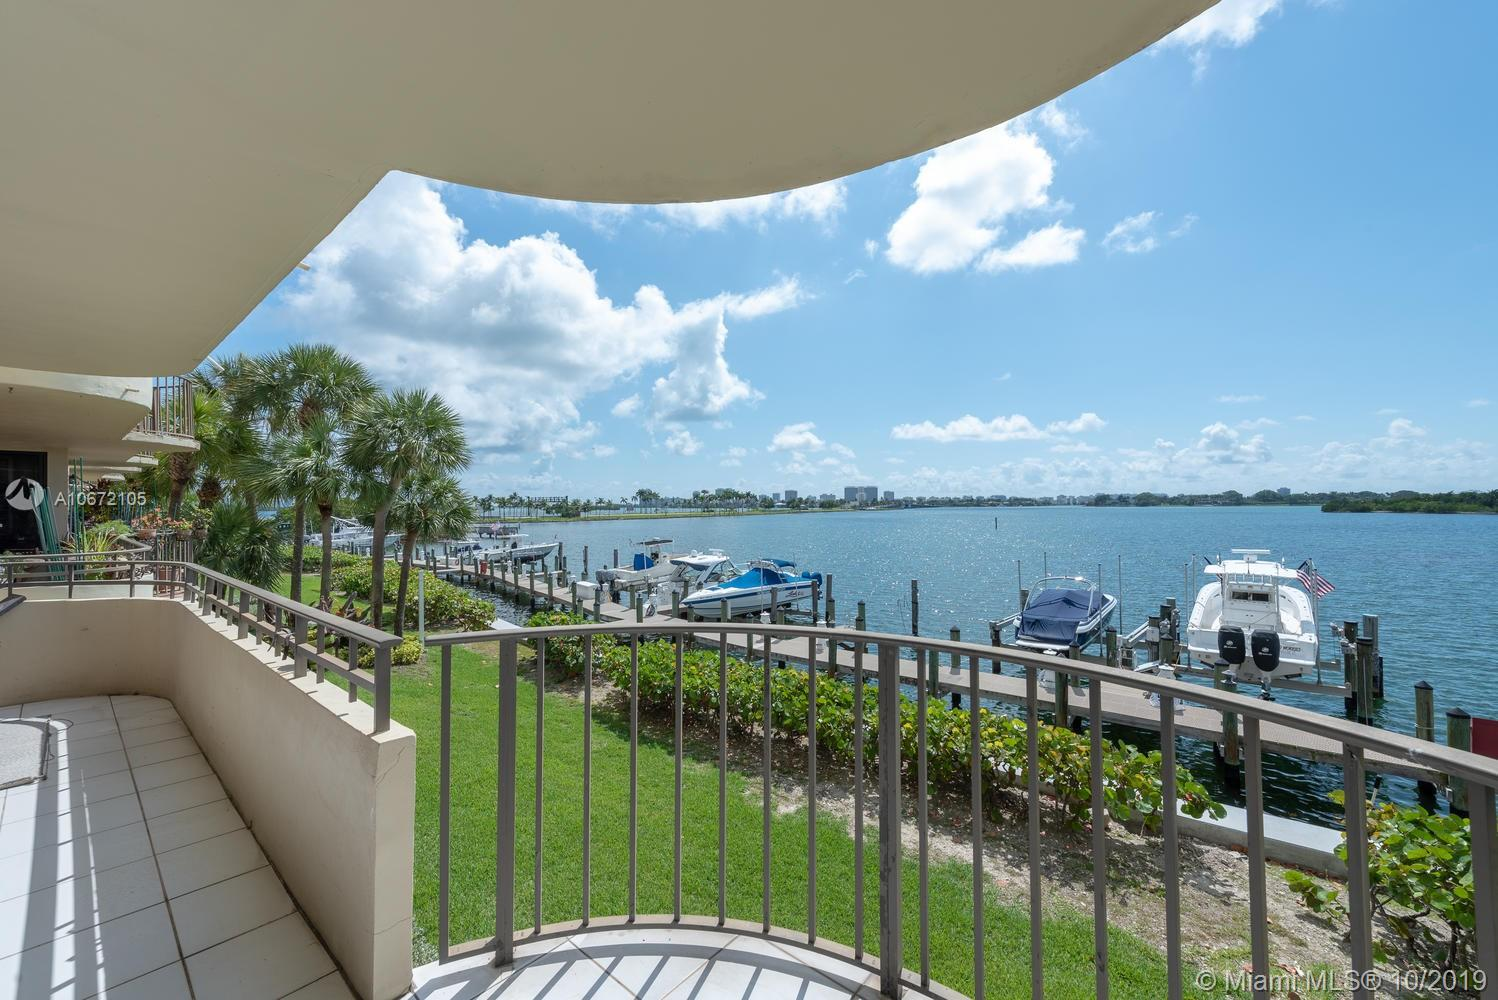 12000 N Bayshore Dr #208 For Sale A10672105, FL